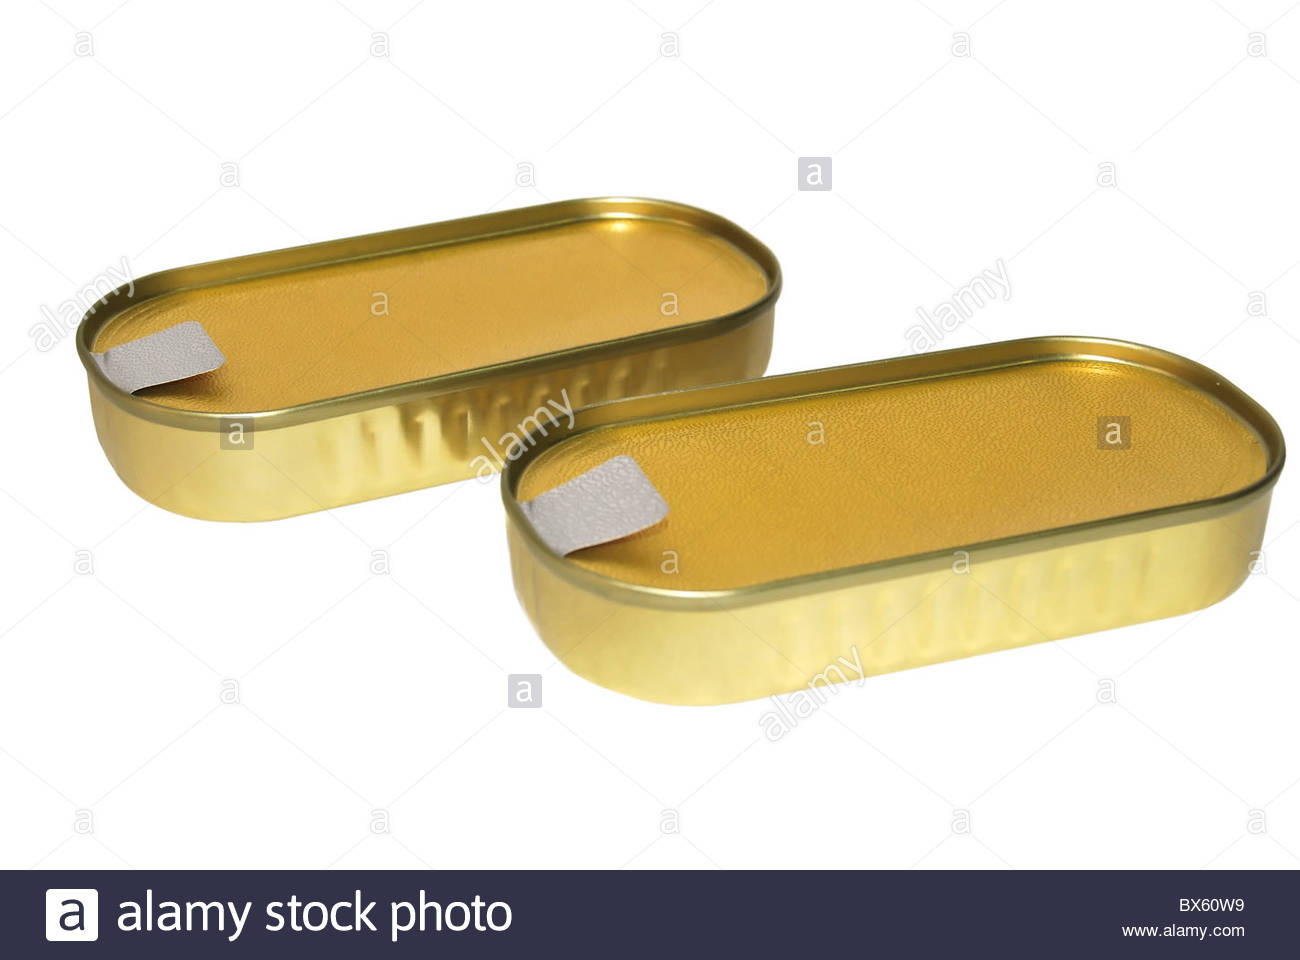 Two anchovies tin cans isolated on white. Food industry - Stock Image